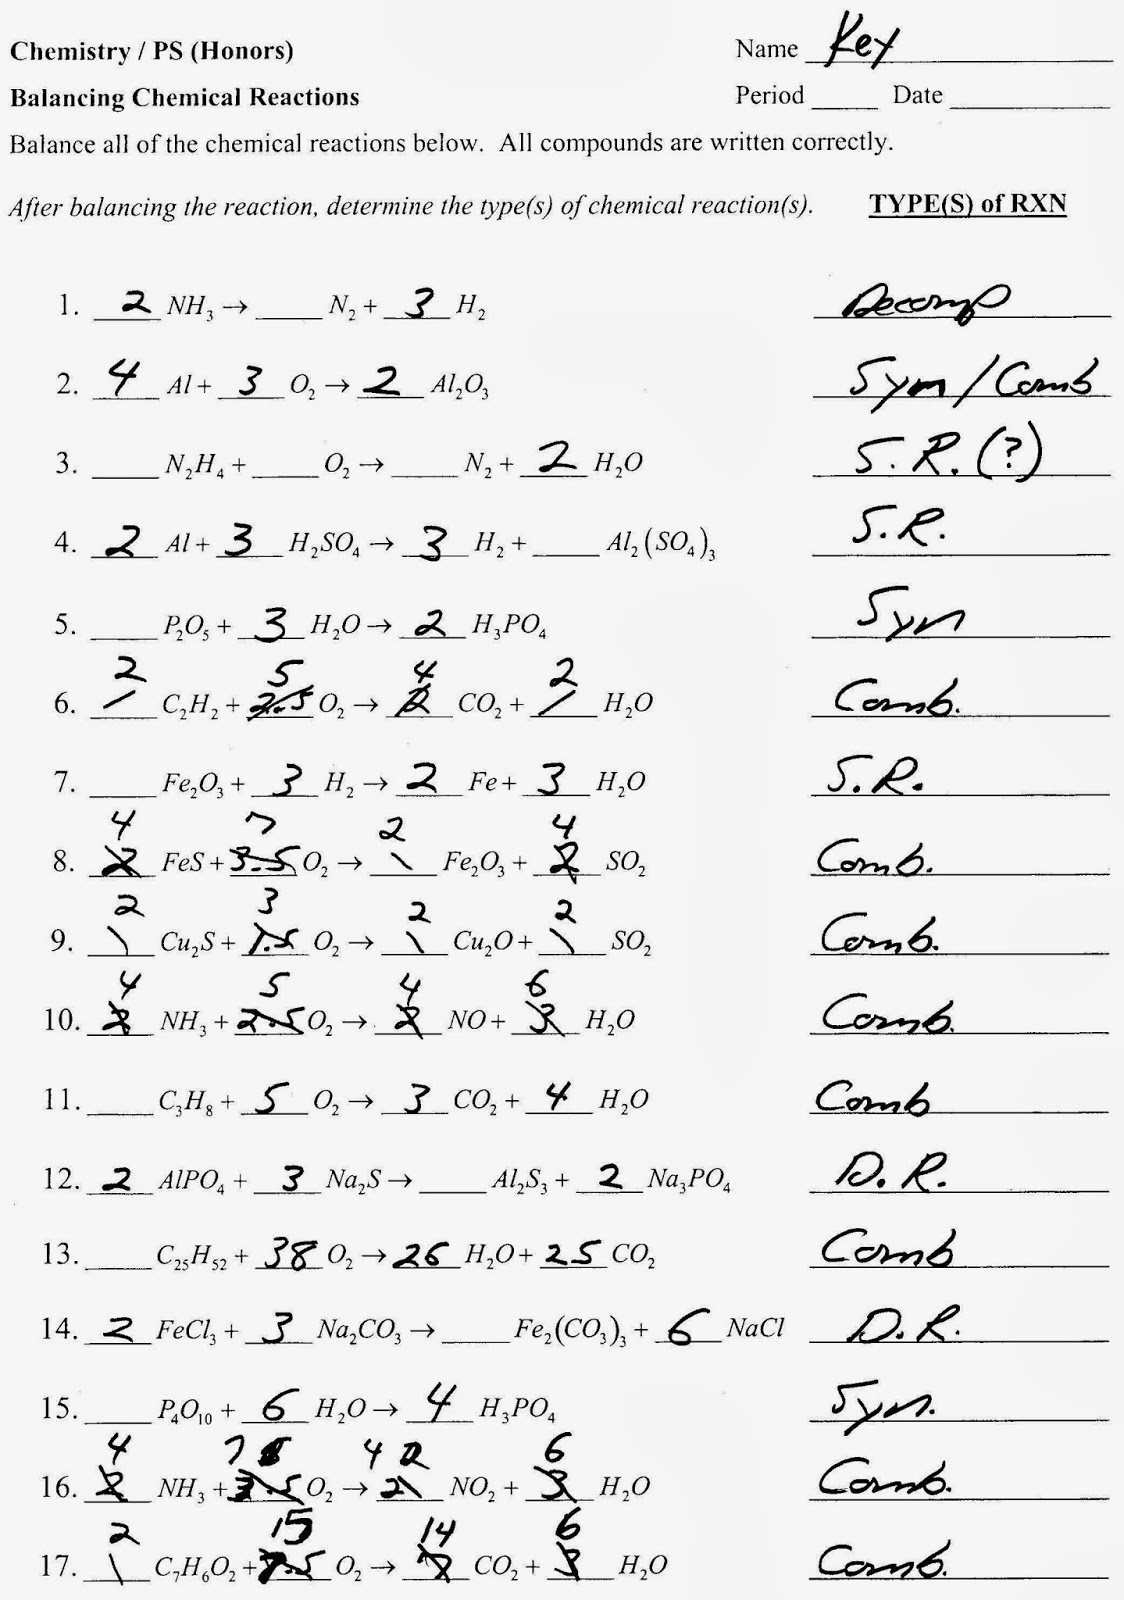 Aldiablosus  Scenic Balancing Chemical Equations Worksheets Balancing Chemical  With Exquisite Balancing Chemical Equations Worksheet Answer Key On Chemistry Double With Breathtaking Ks Ratio Worksheets Also Worksheets For Children With Dyslexia In Addition Easy Worksheets For Grade  And Worksheets Rounding As Well As Urdu Handwriting Worksheets Additionally Hyperlink To Excel Worksheet From Letstalkhiphopus With Aldiablosus  Exquisite Balancing Chemical Equations Worksheets Balancing Chemical  With Breathtaking Balancing Chemical Equations Worksheet Answer Key On Chemistry Double And Scenic Ks Ratio Worksheets Also Worksheets For Children With Dyslexia In Addition Easy Worksheets For Grade  From Letstalkhiphopus